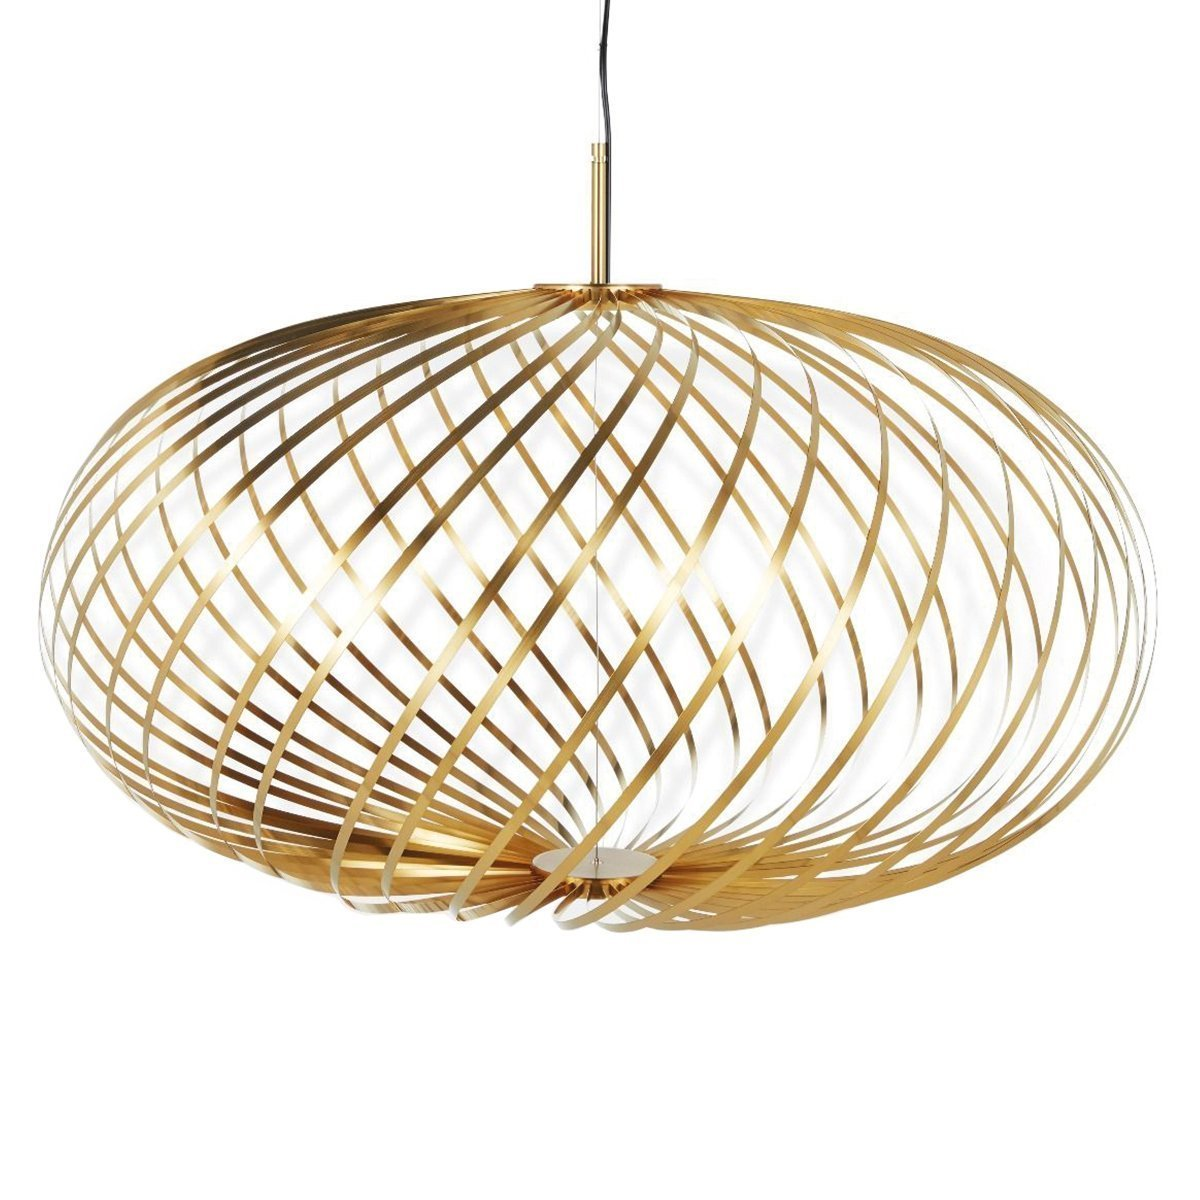 Tom Dixon Spring Hanglamp - Messing - Medium